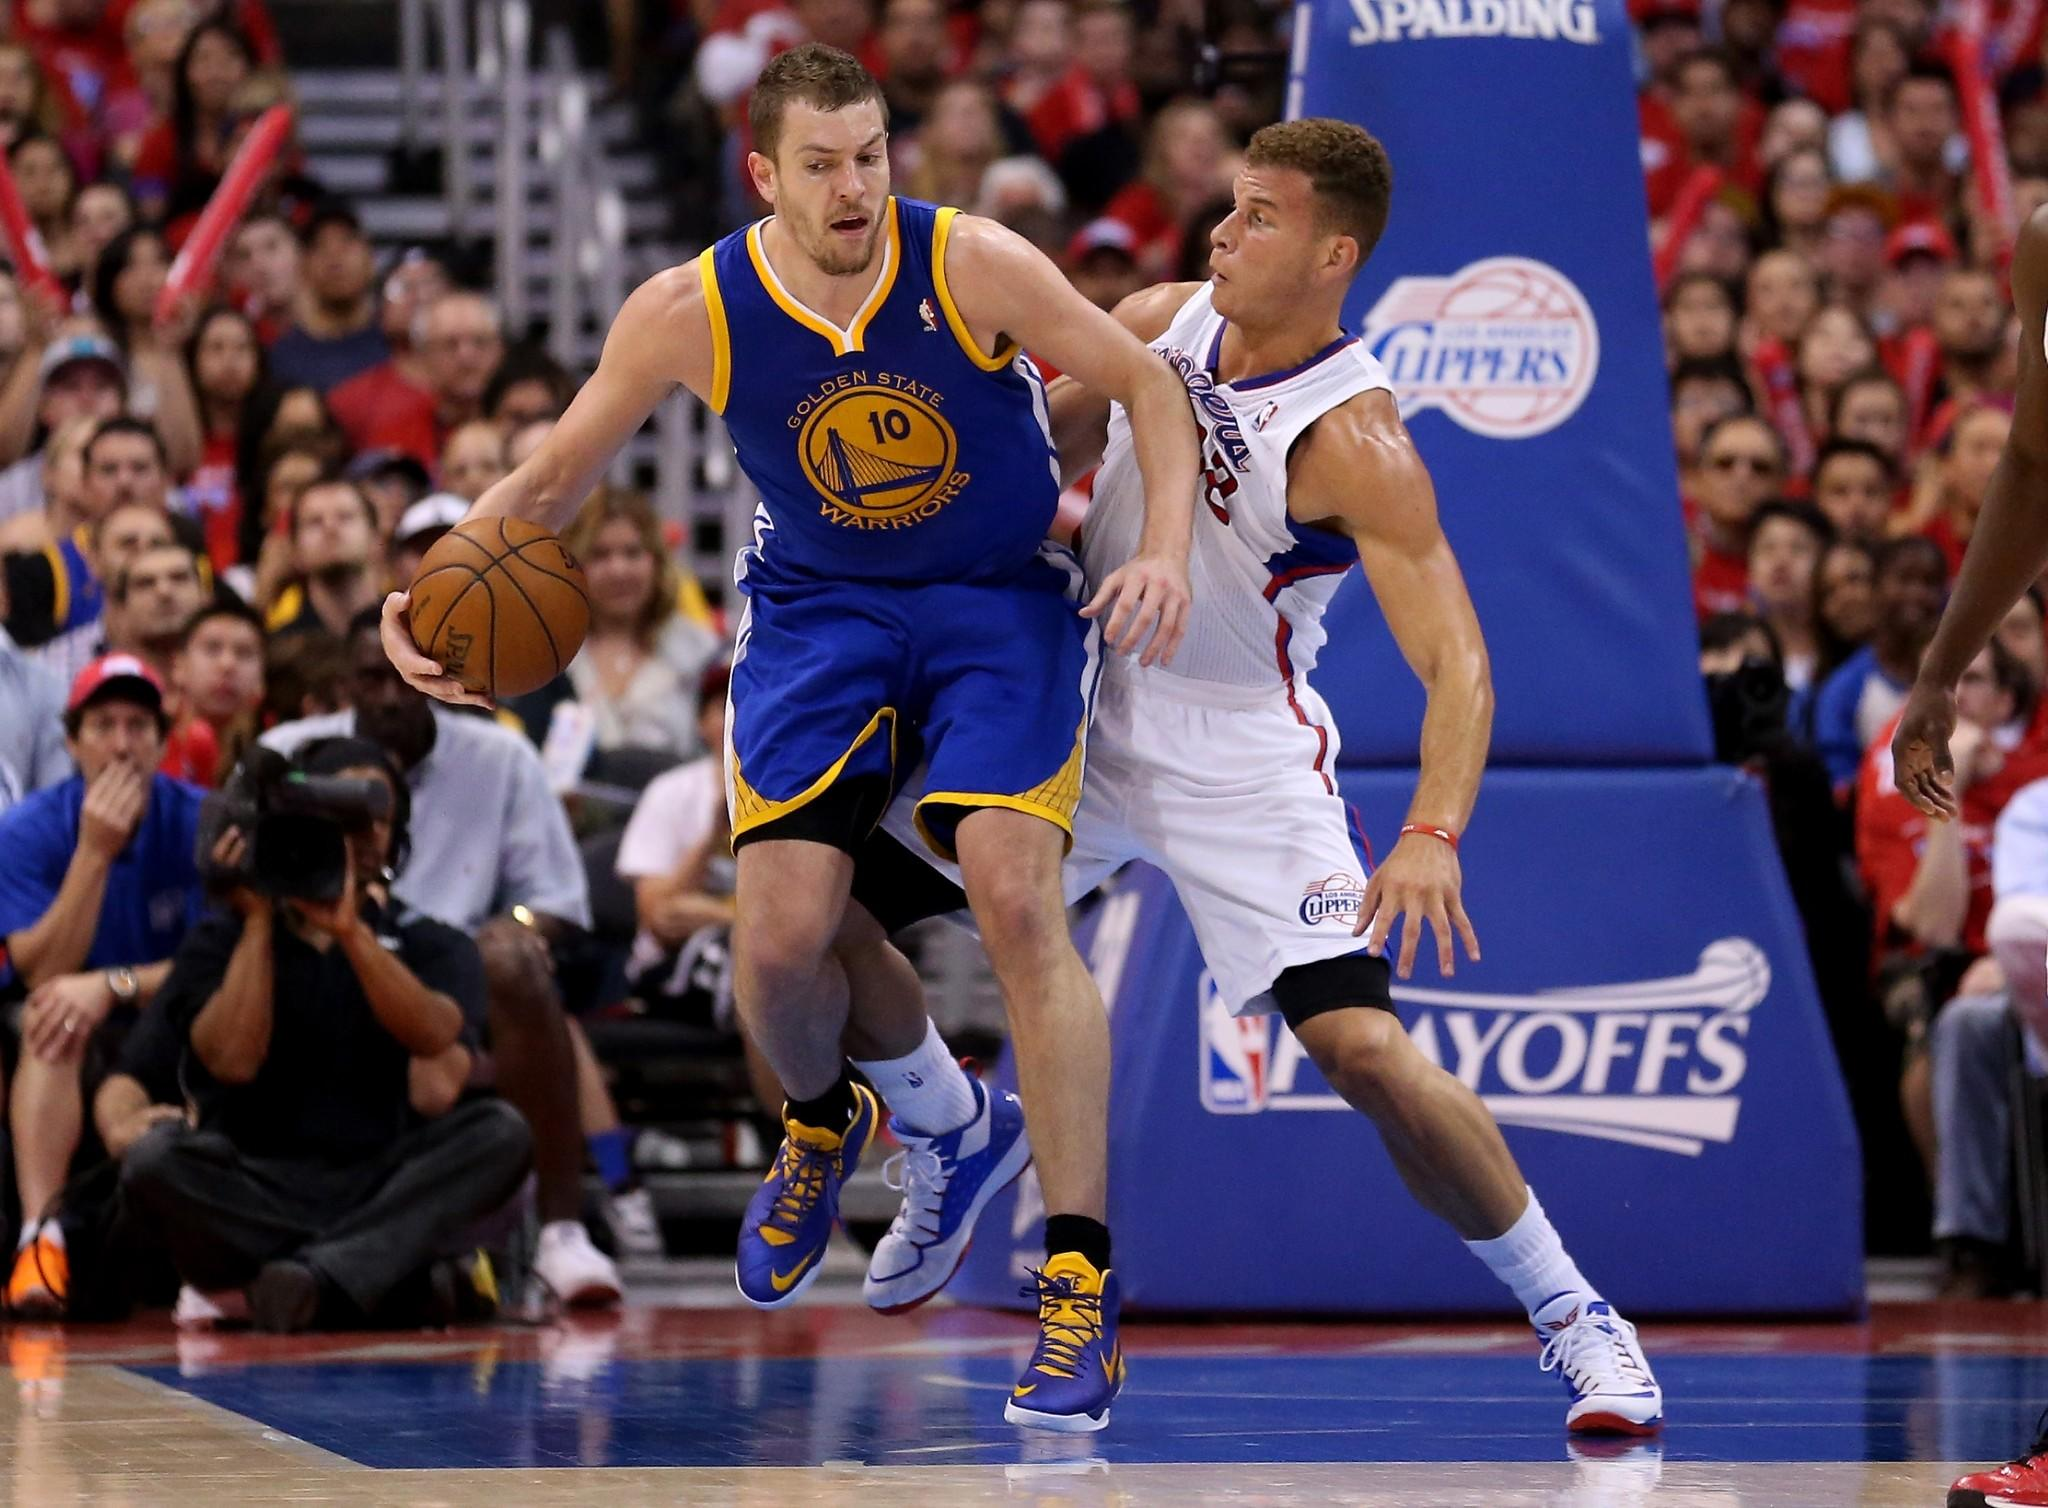 Golden State Warriors center David Lee, left, controls the ball in front of Clippers power forward Blake Griffin during the Clippers' 109-105 loss in Game 1 of the NBA Western Conference quarterfinals Saturday at Staples Center.